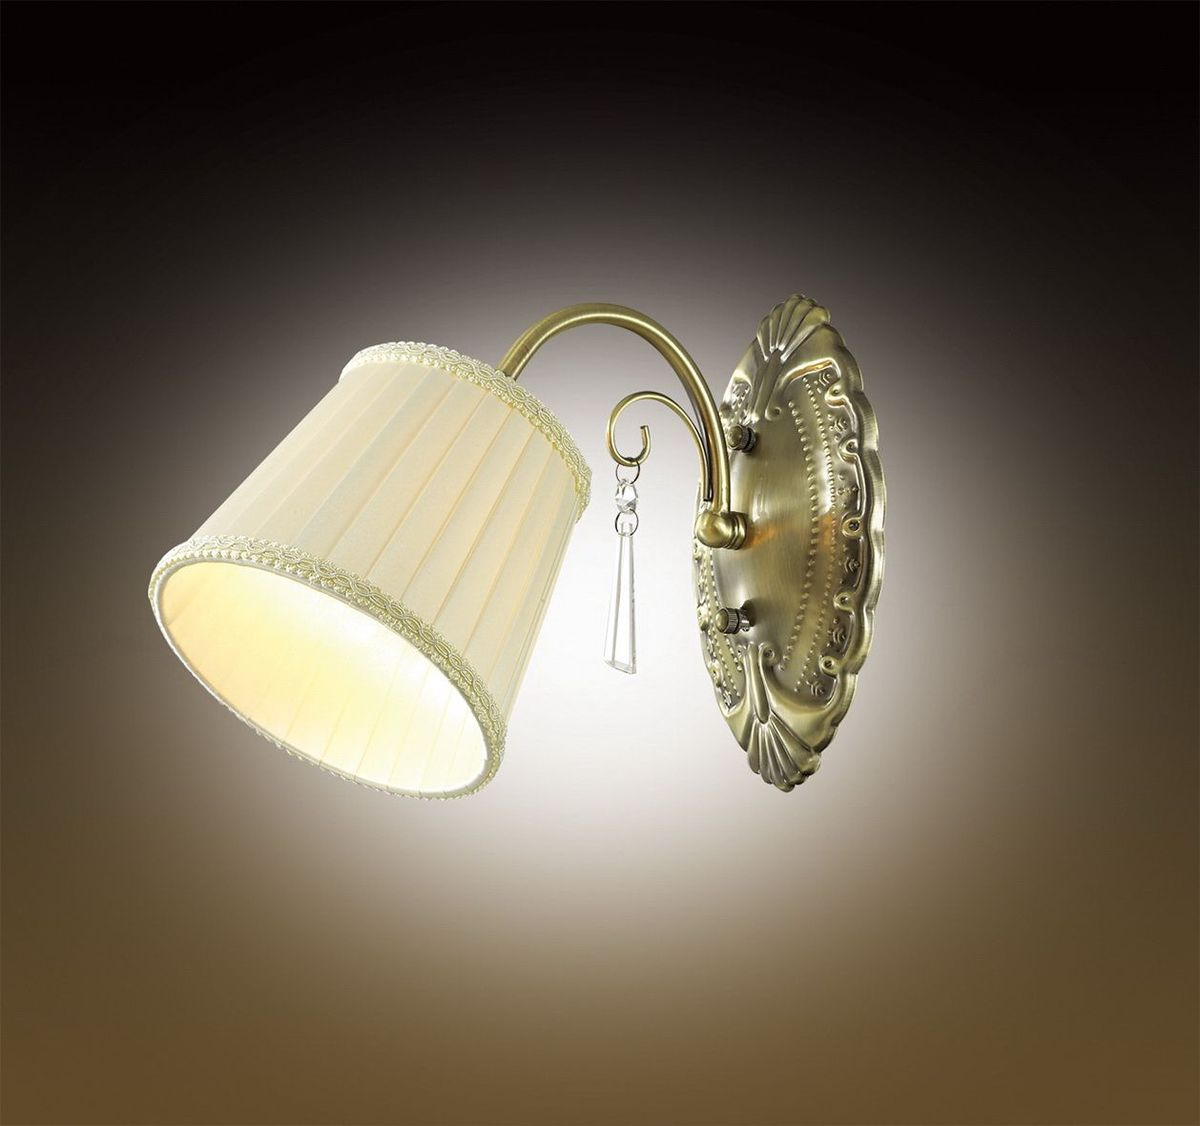 Бра Odeon Light Atesa, 1 х E14, 40W. 2925/1W2925/1W